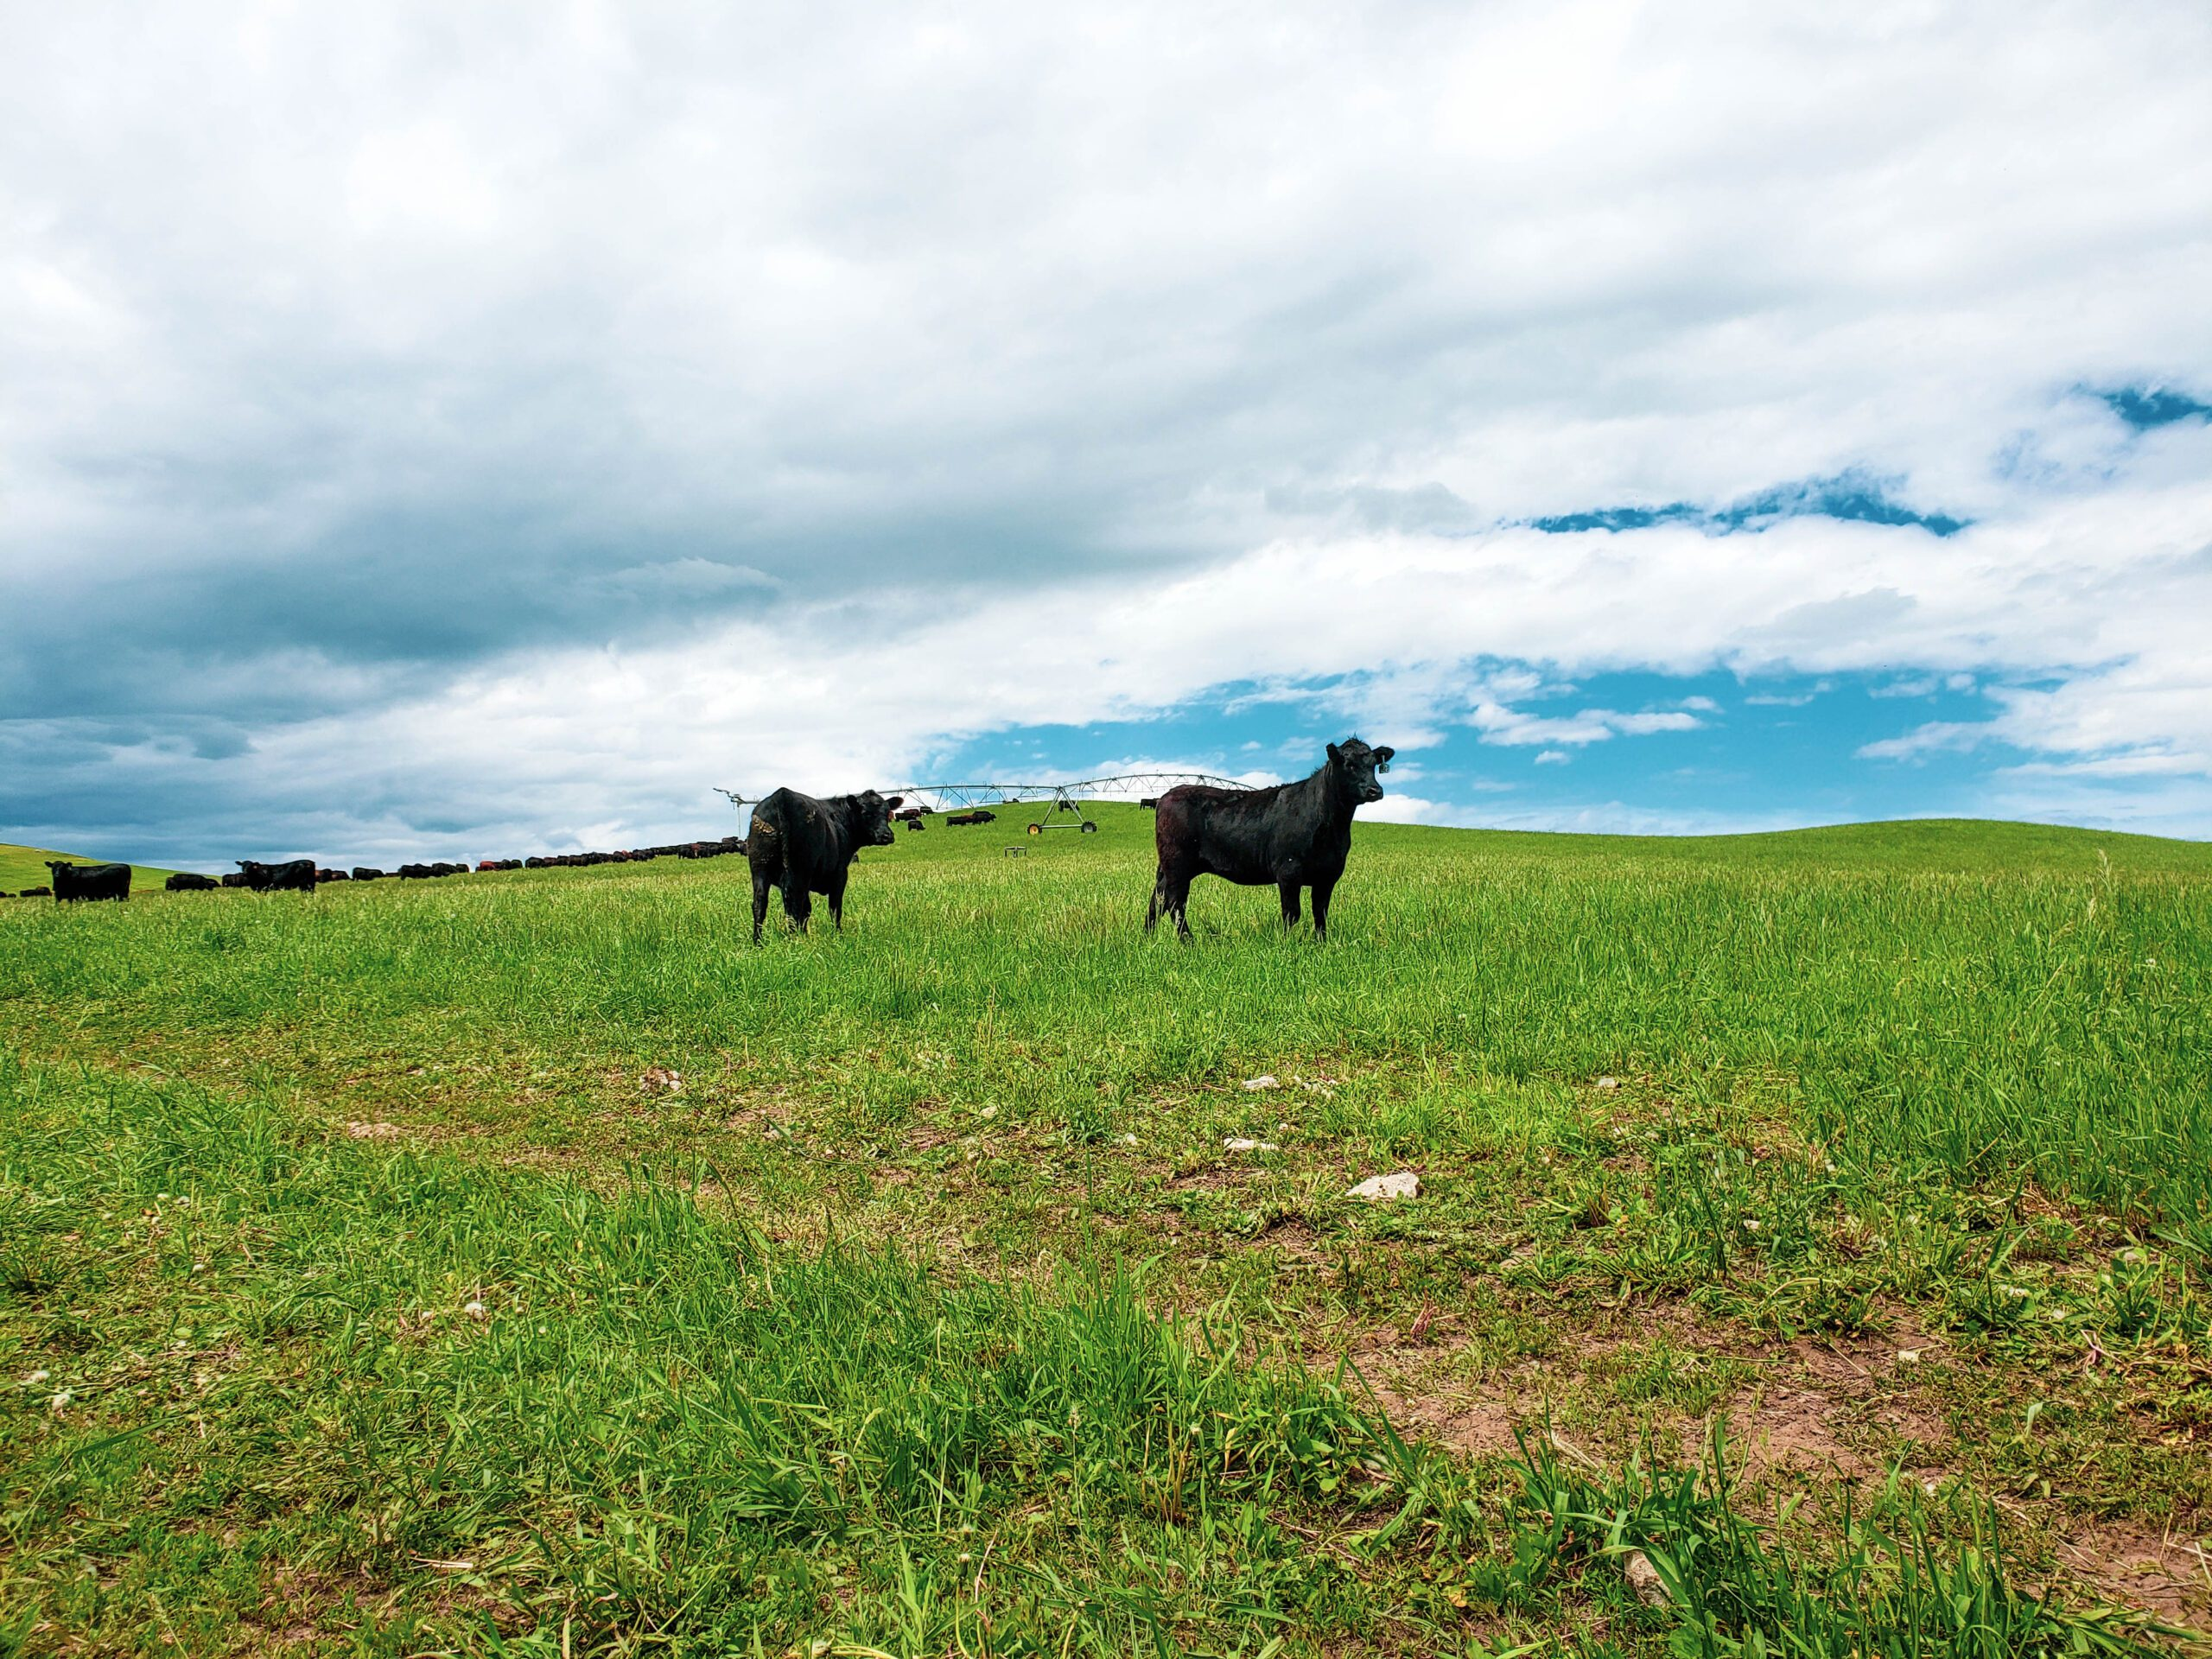 Replacement heifers on irrigated pasture